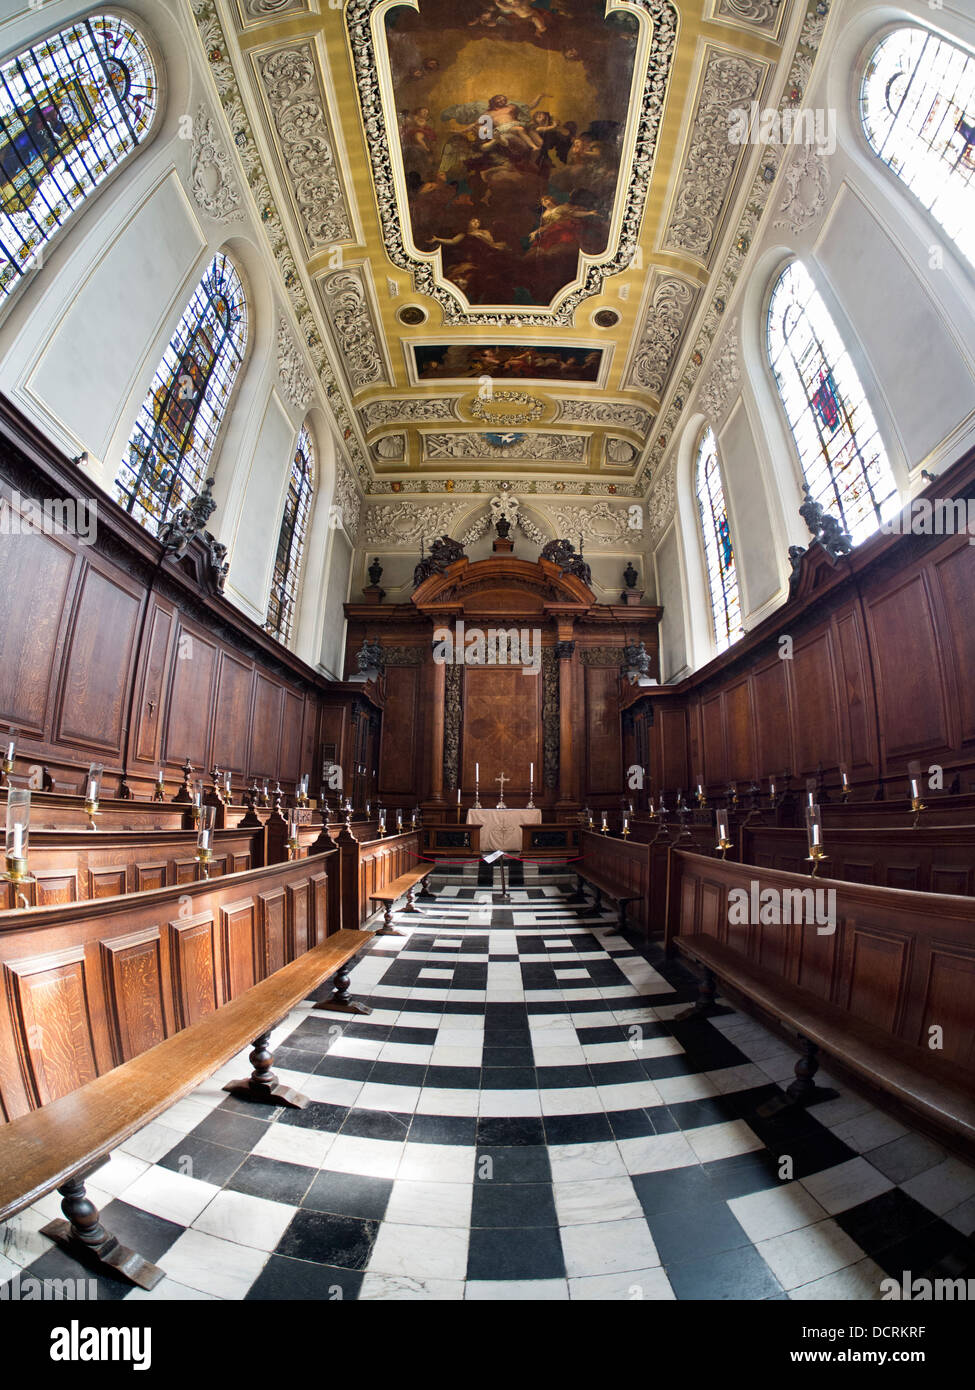 The Chapel of Trinity College, Oxford - fisheye view 8 - Stock Image